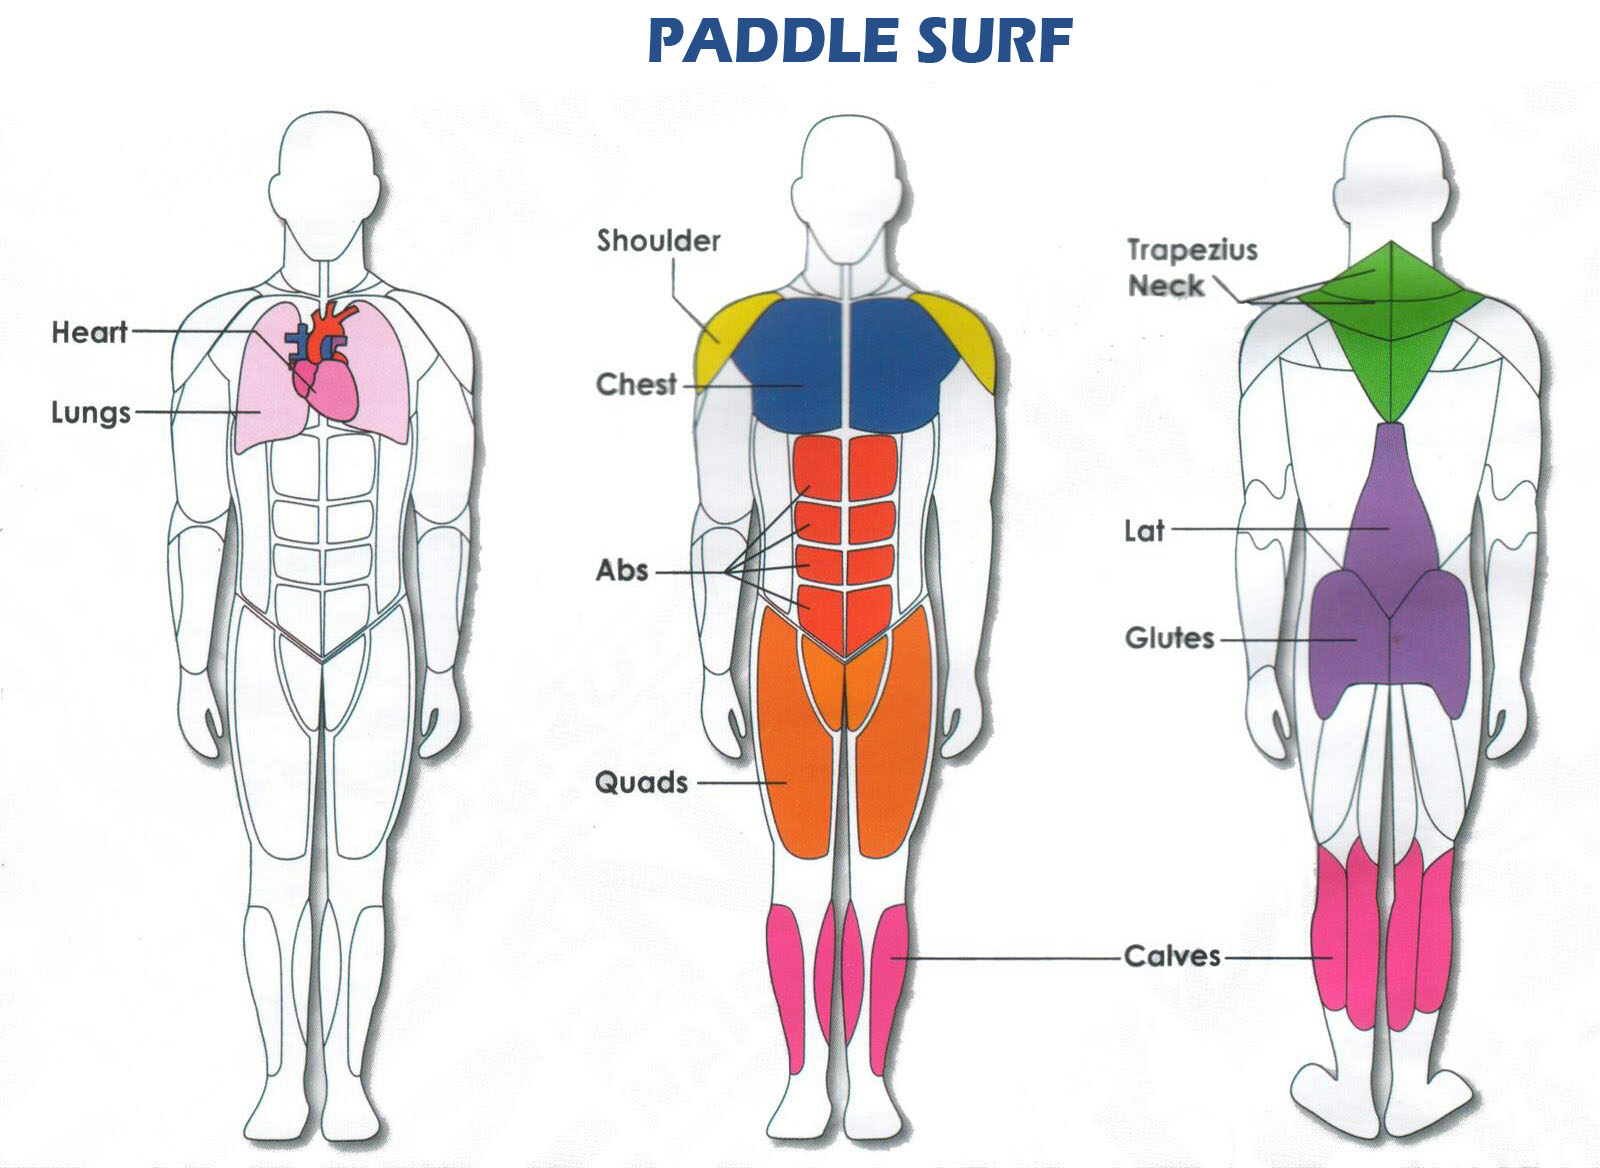 tabla de paddle surf as k